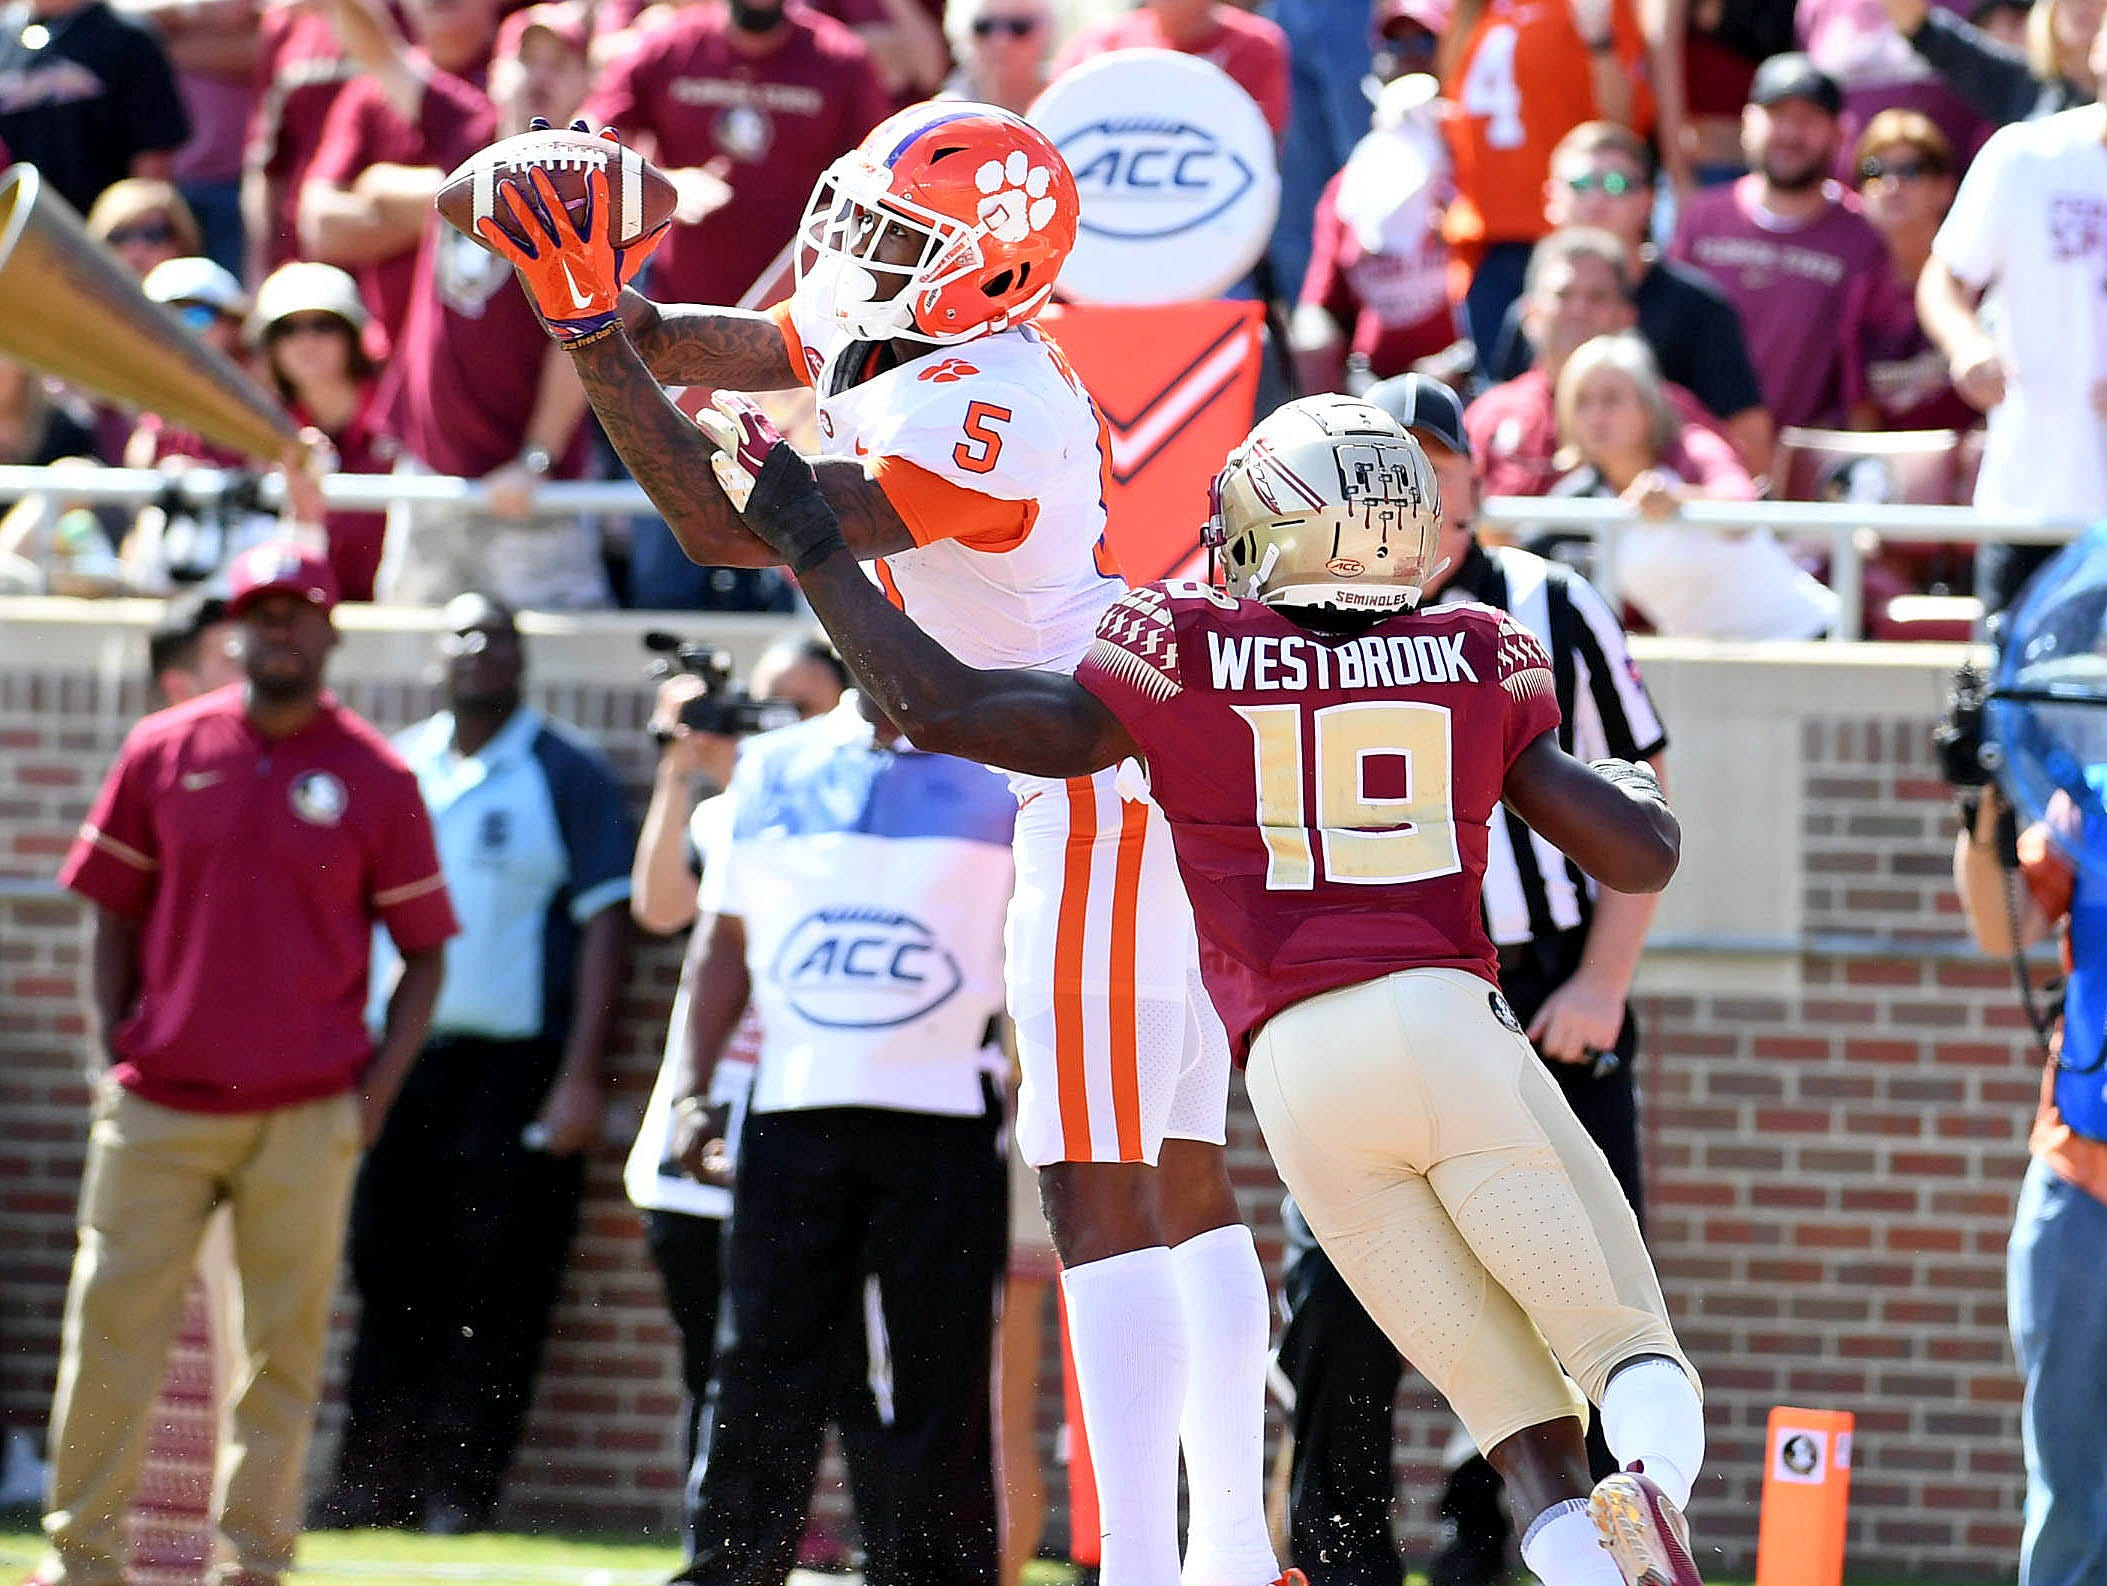 Oct 27, 2018; Tallahassee, FL, USA; Clemson Tigers wide receiver Tee Higgins (5) catches a touchdown past Florida State Seminoles defensive back AJ Westbrook (19) during the first half at Doak Campbell Stadium. Mandatory Credit: Melina Myers-USA TODAY Sports